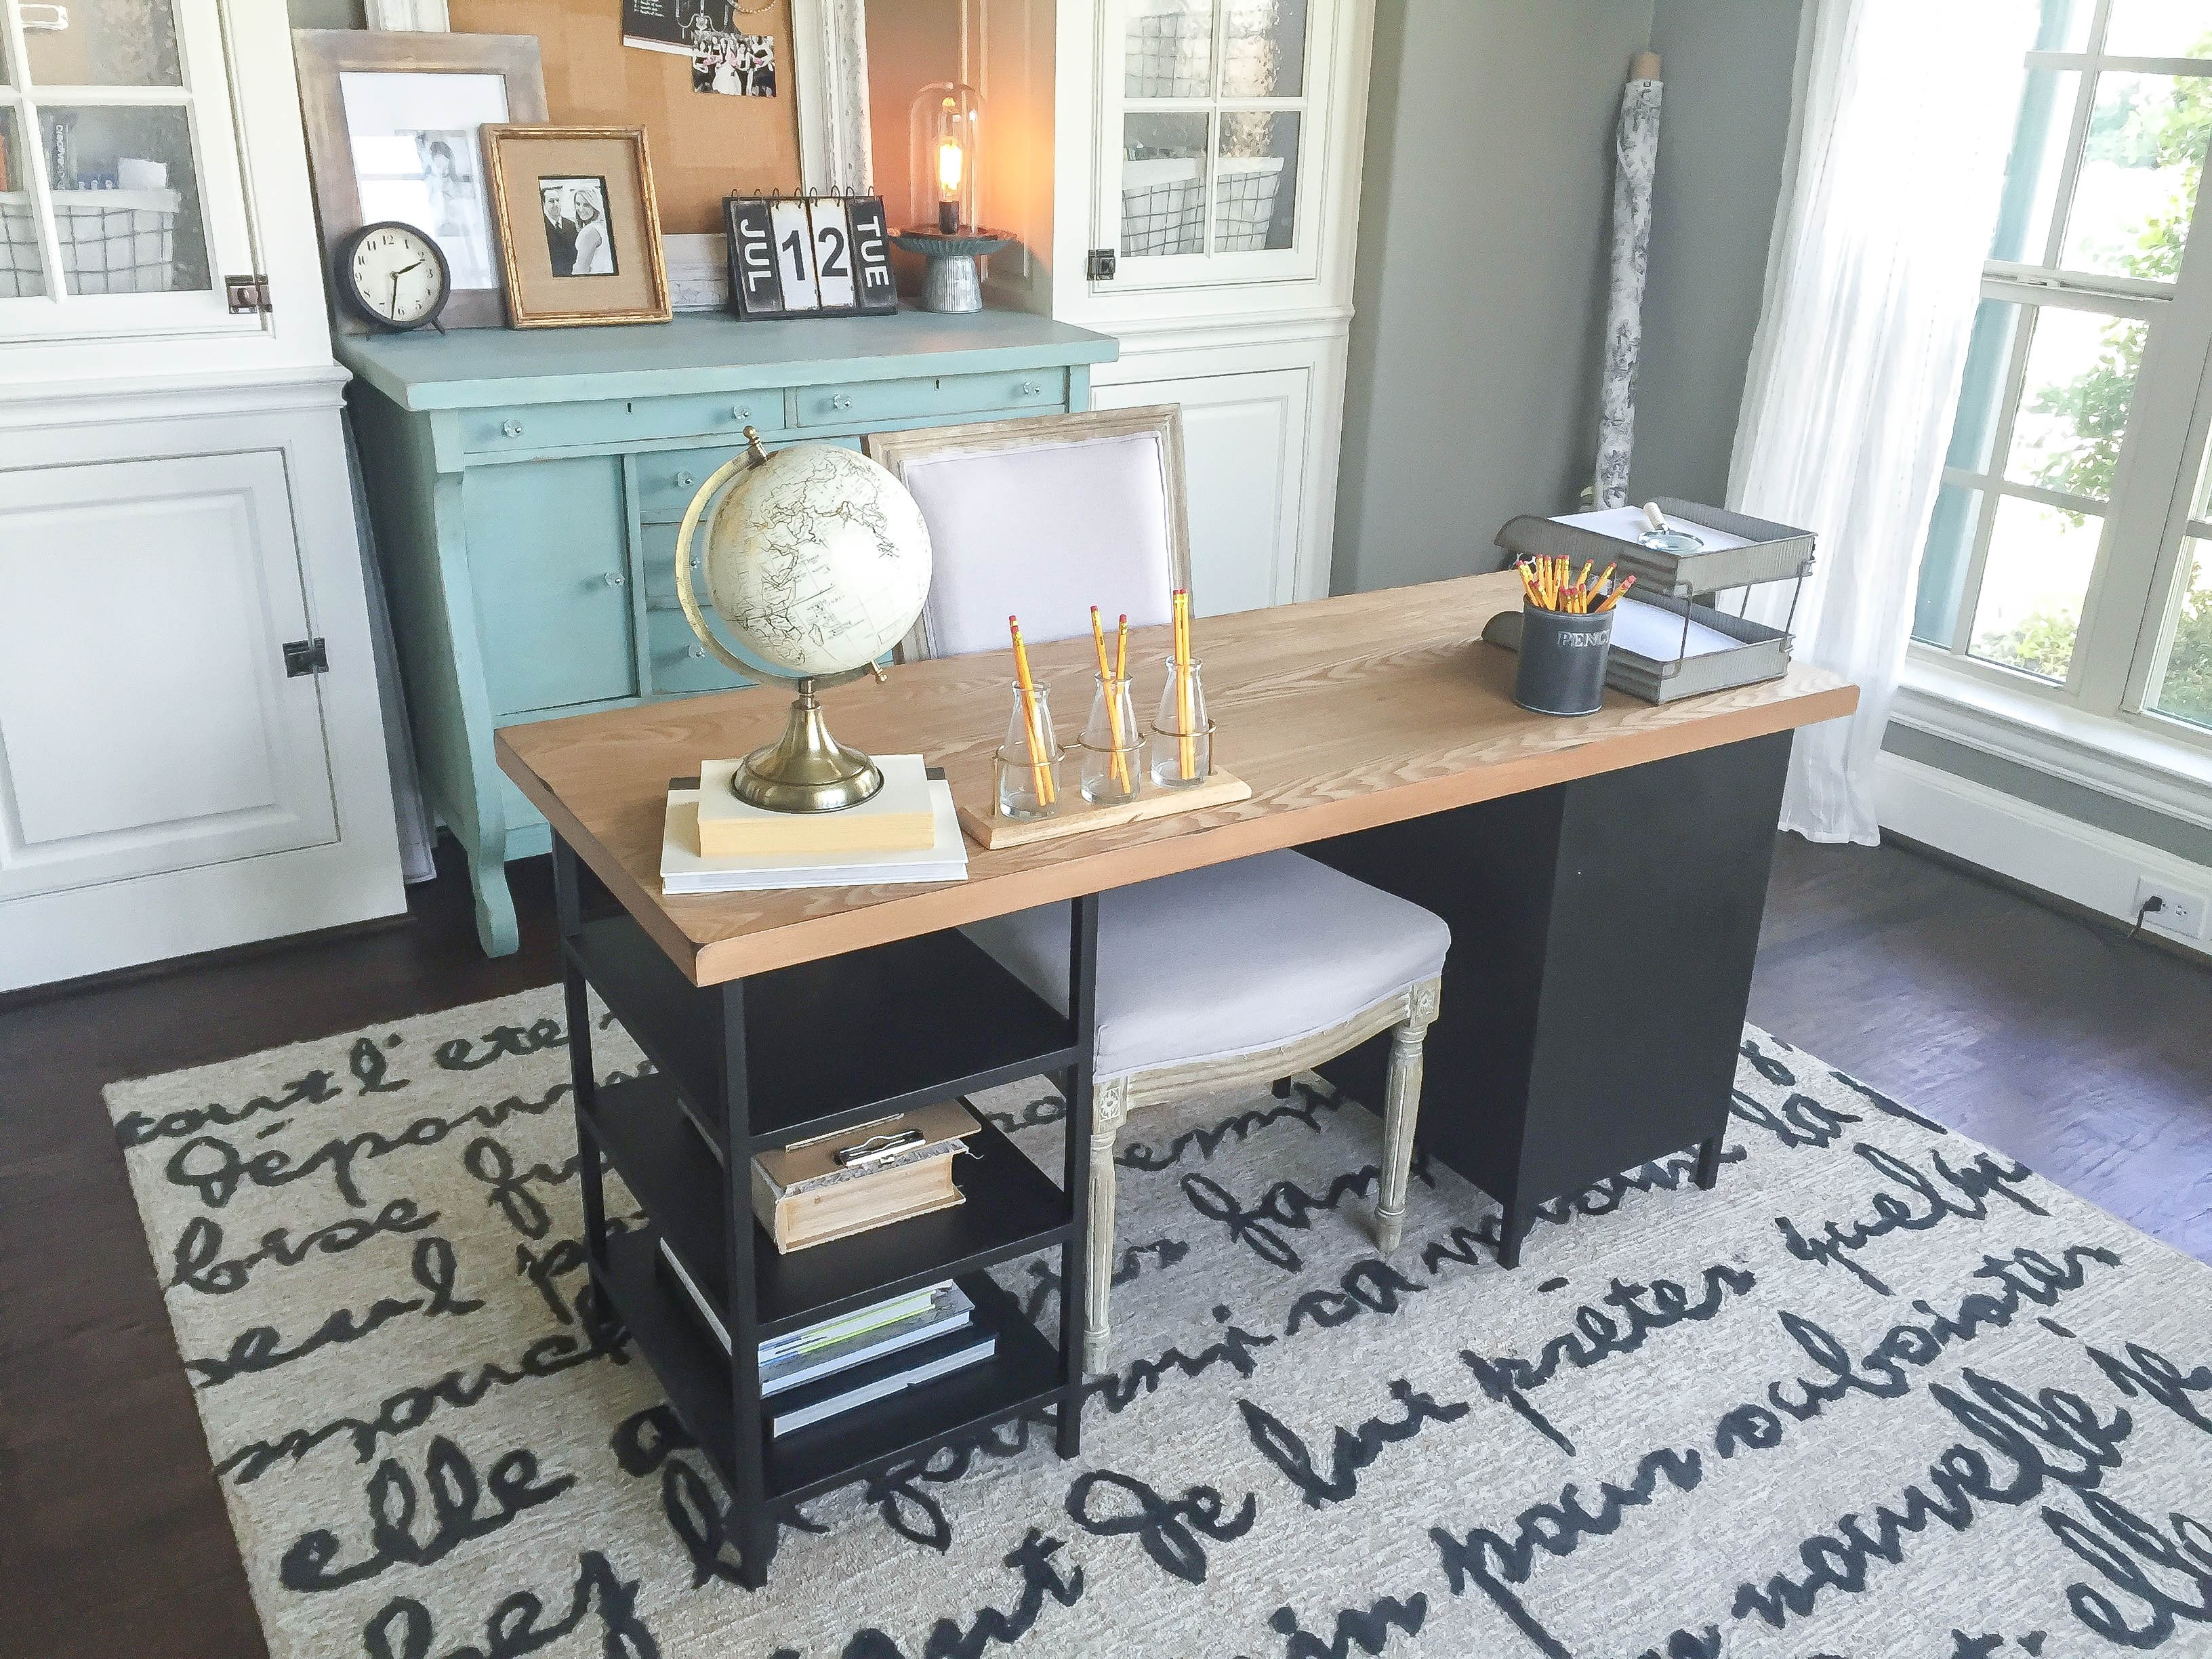 After Finding The Perfect Desk It Was Time To Accessorize Again There Are So Many Awesome Options At World Market First Thing I Found This Gold